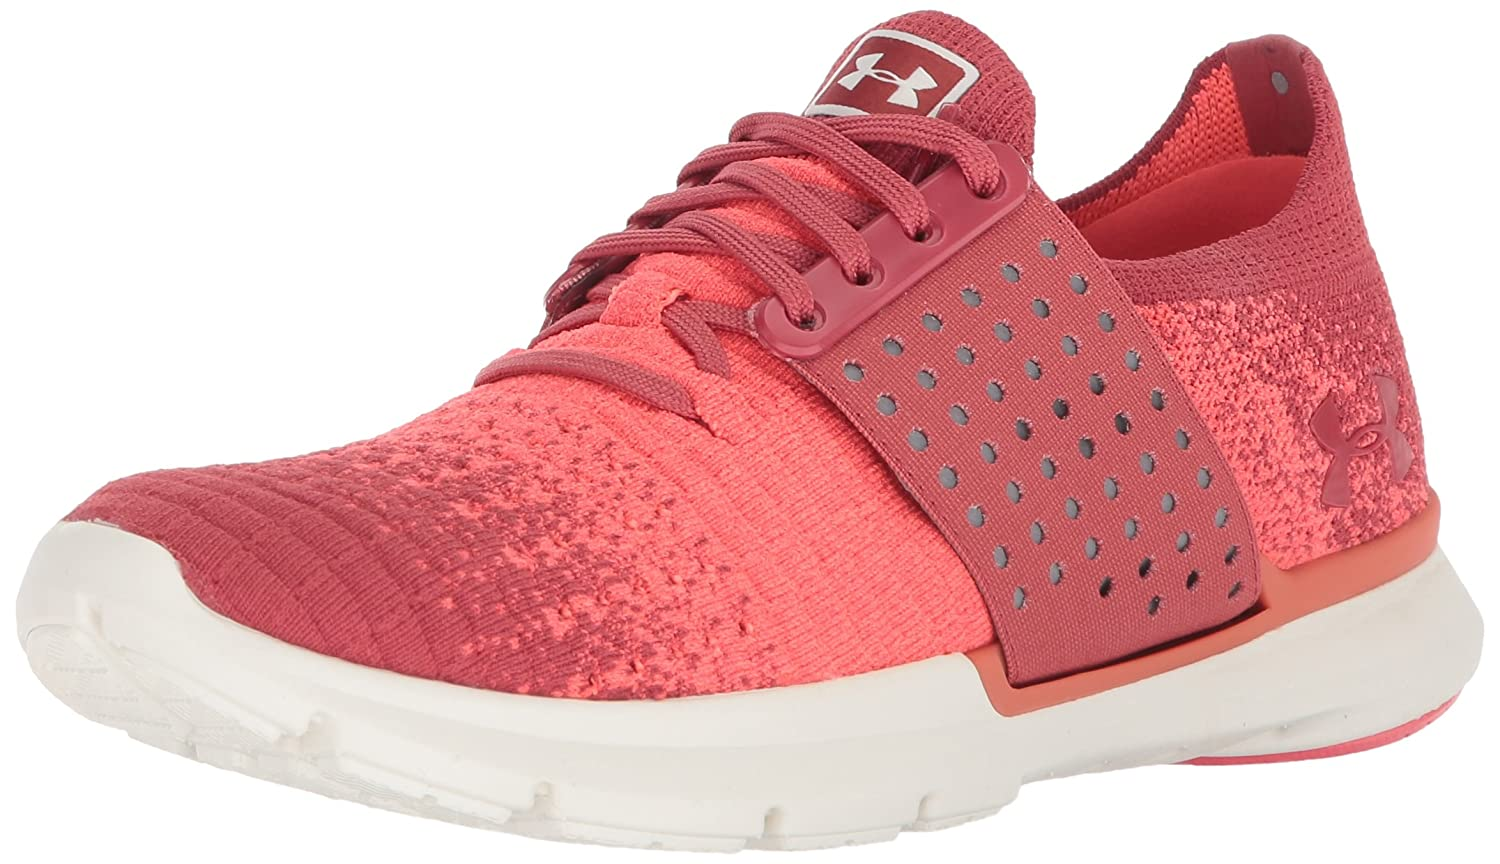 Under Armour Women's Speedform Slingwrap Fade Running Shoe B071RZFWSH 7.5 M US|Rustic Red (601)/Success